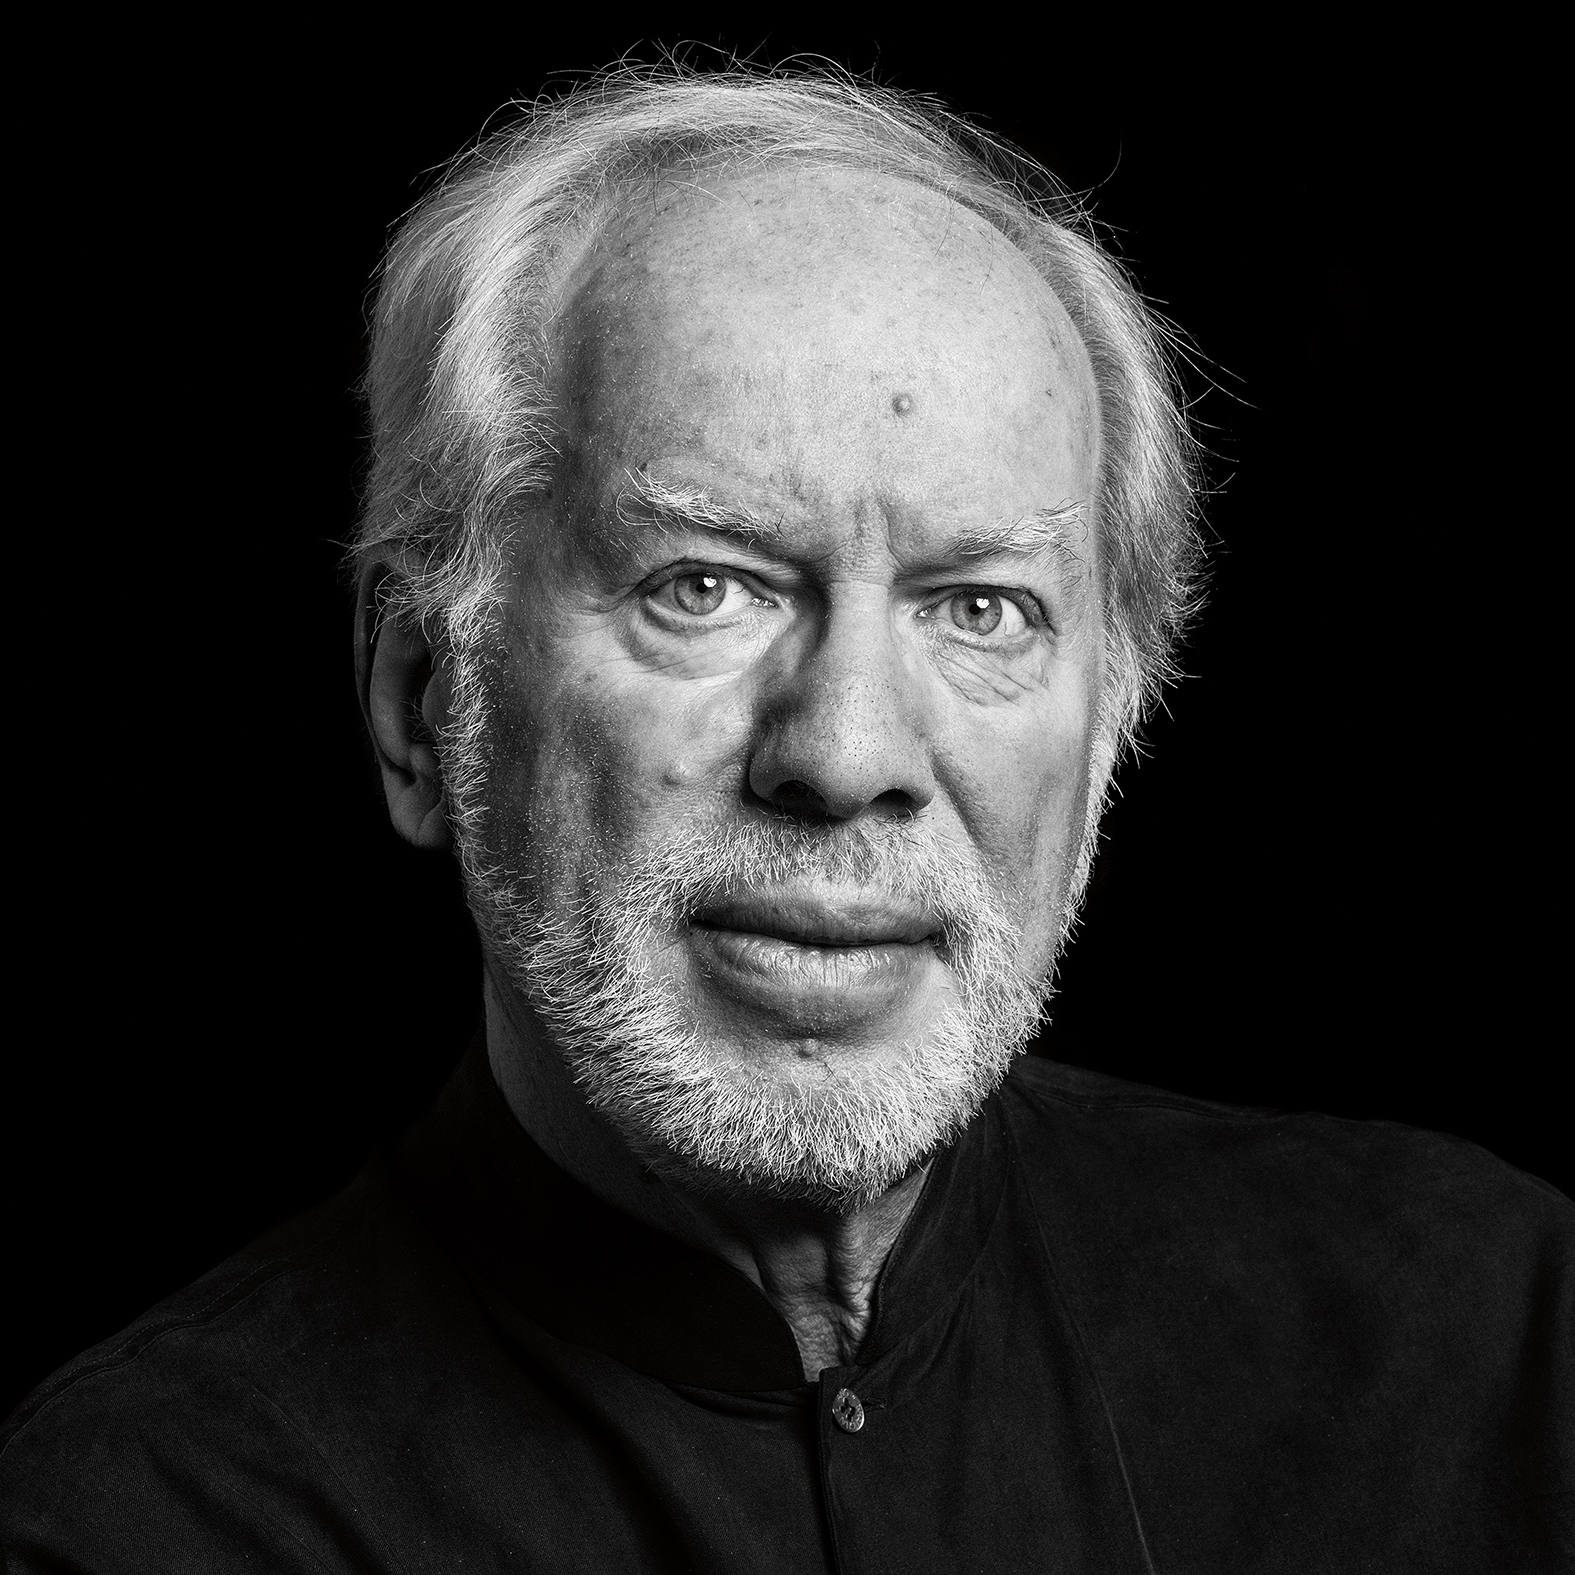 Portrait of violinist Gidon Kremer in Vilnius